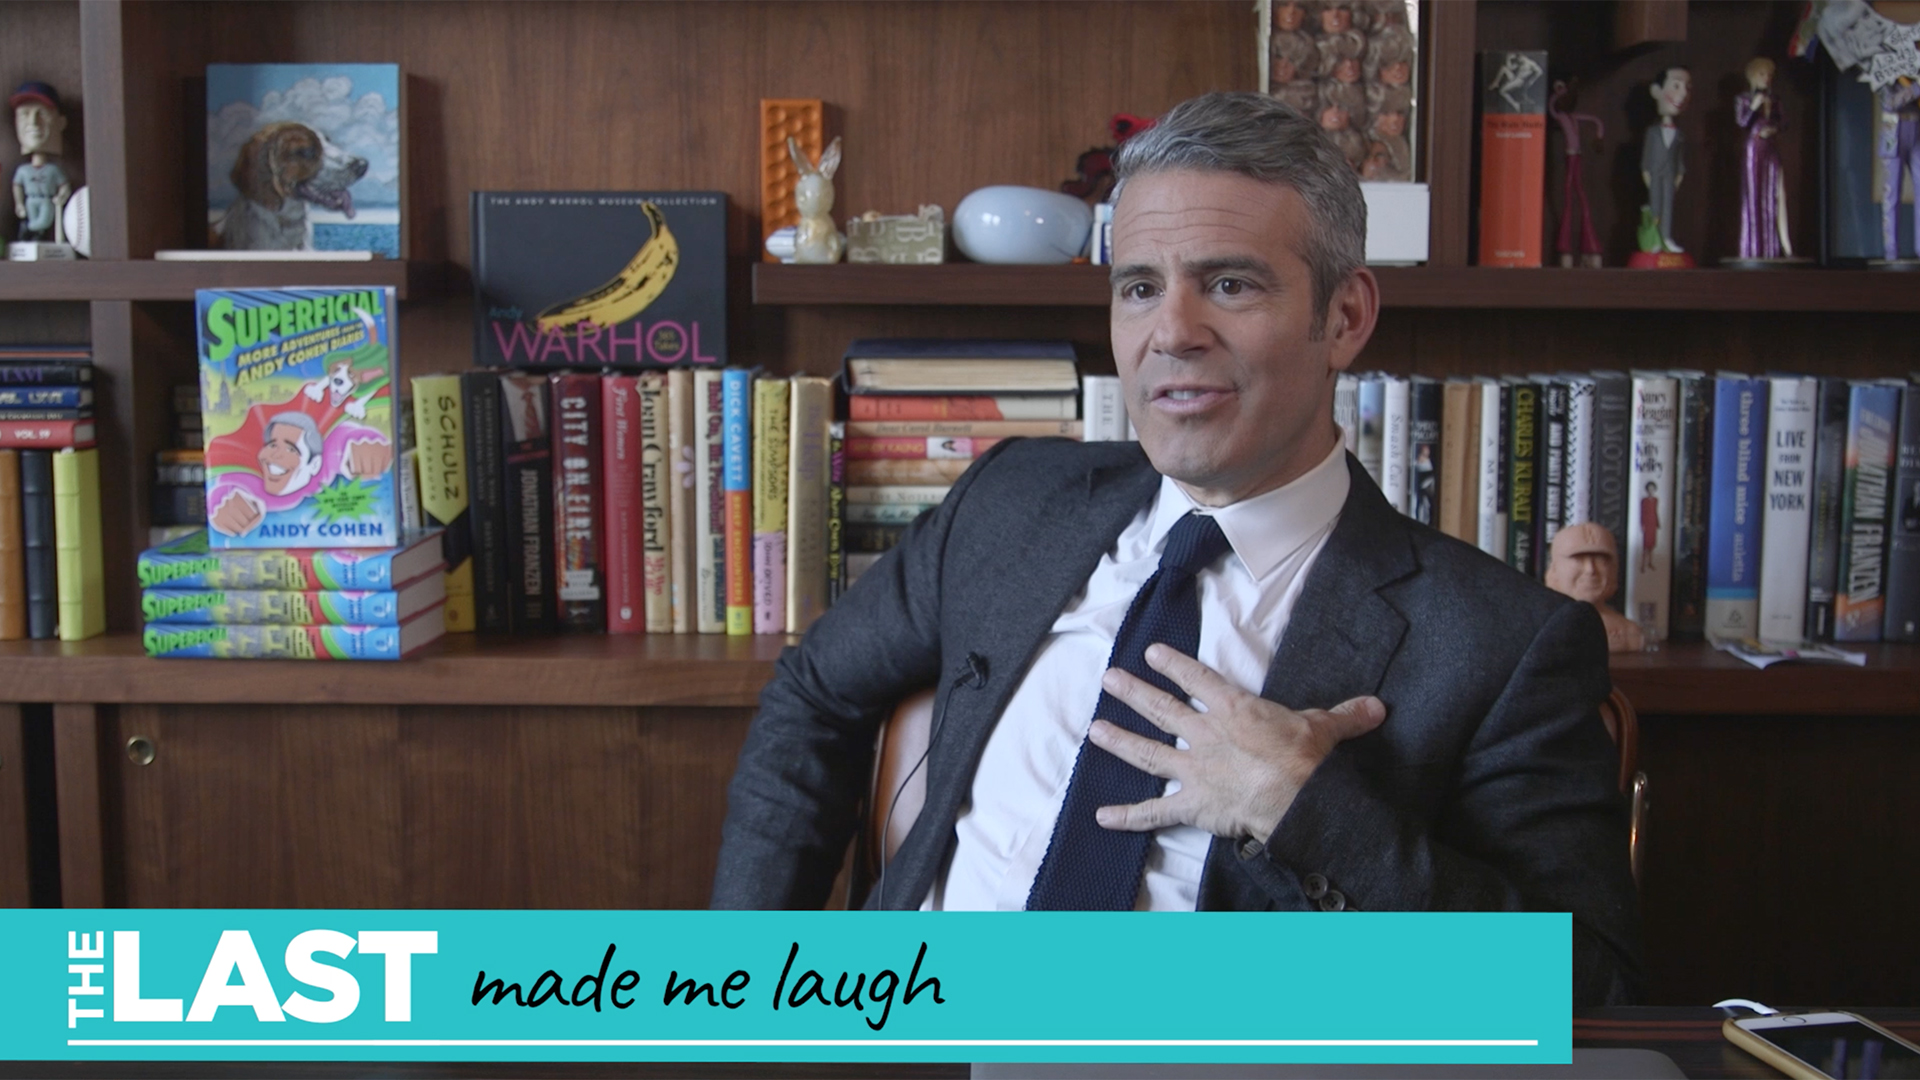 The Last Thing: Andy Cohen